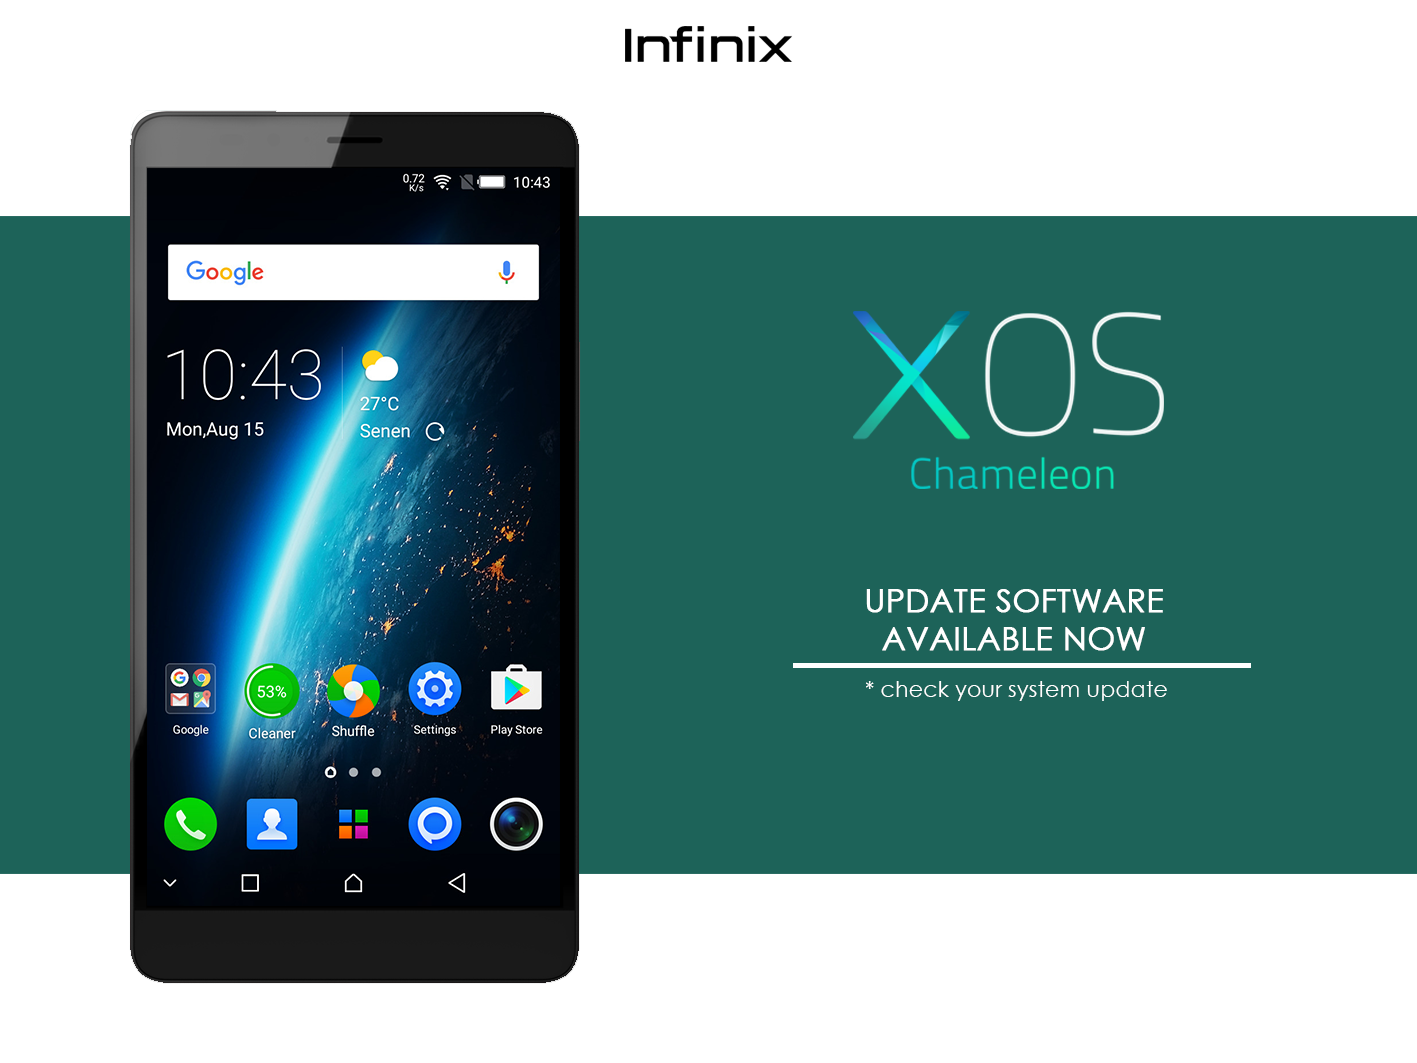 How to Upgrade Your Infinix Note 2 & Hot 2 LTE To XOS